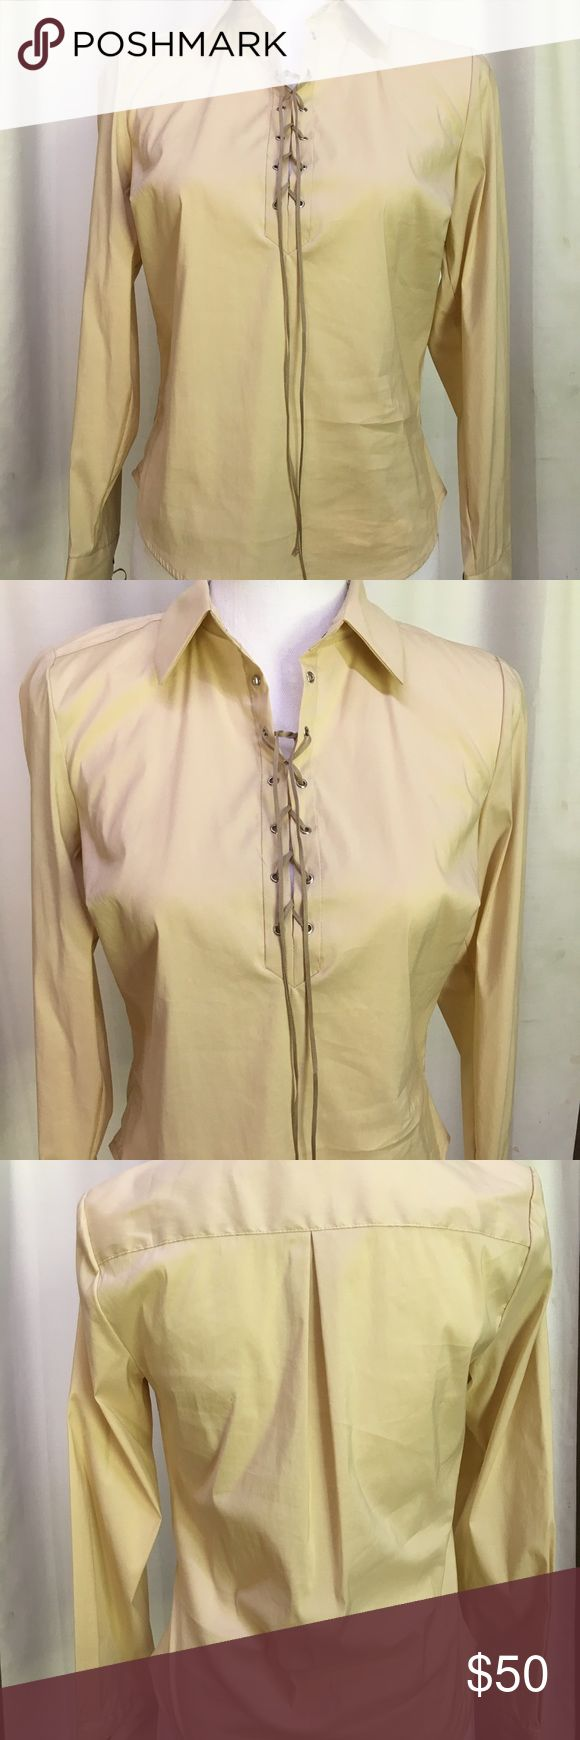 NWT DIANE VONFURSTENBURG Tan Top Lace Up Size 6 Diane Vonfurstenburg is such a great designer, she really knows how to make a woman look great!  This beautiful blouse is so classy, The look and feel of the fabric just screams luxury!   Size 6.  Feel free to ask questions. SMOKE AND PET FREE STUDIO Diane Von Furstenberg Tops Blouses